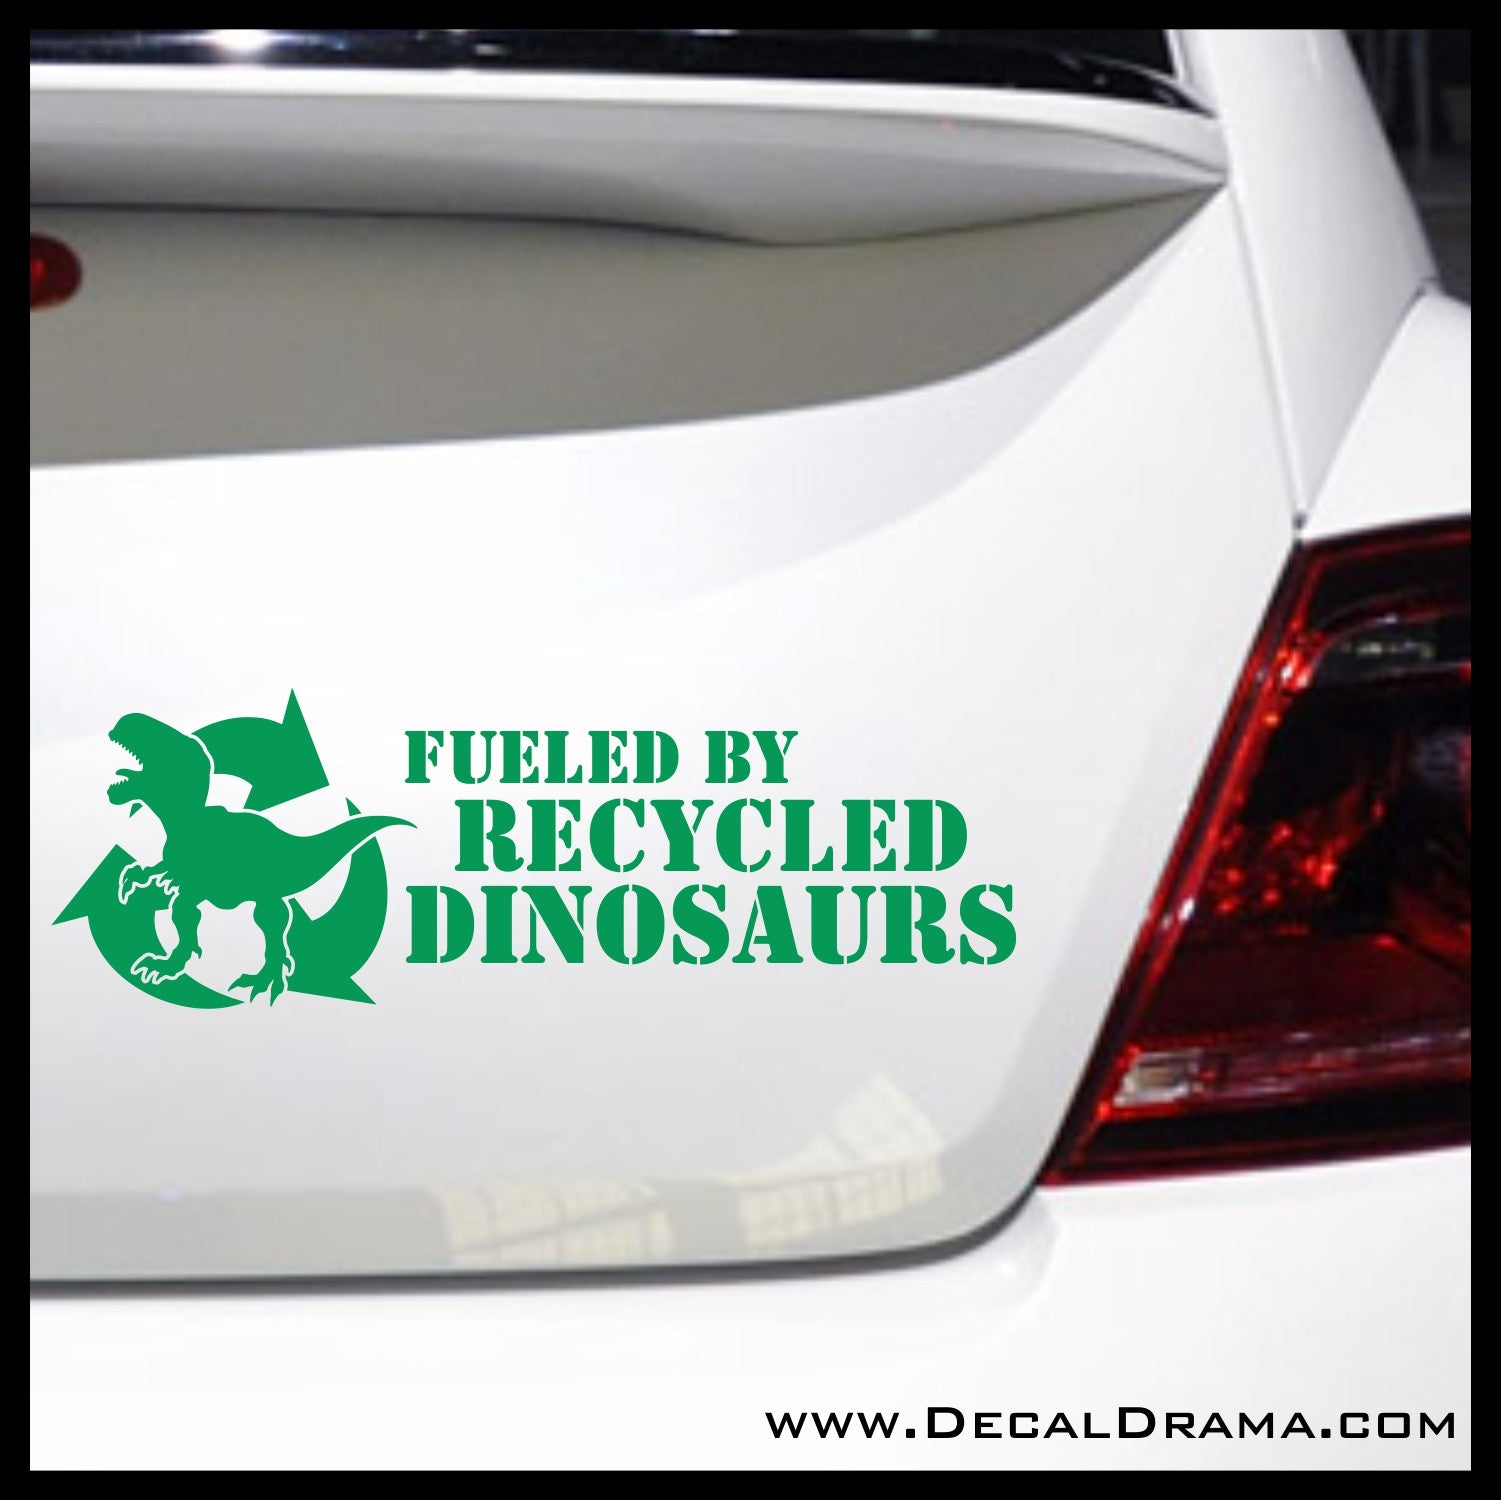 Fueled by Recycled Dinosaurs Vinyl Car Decal